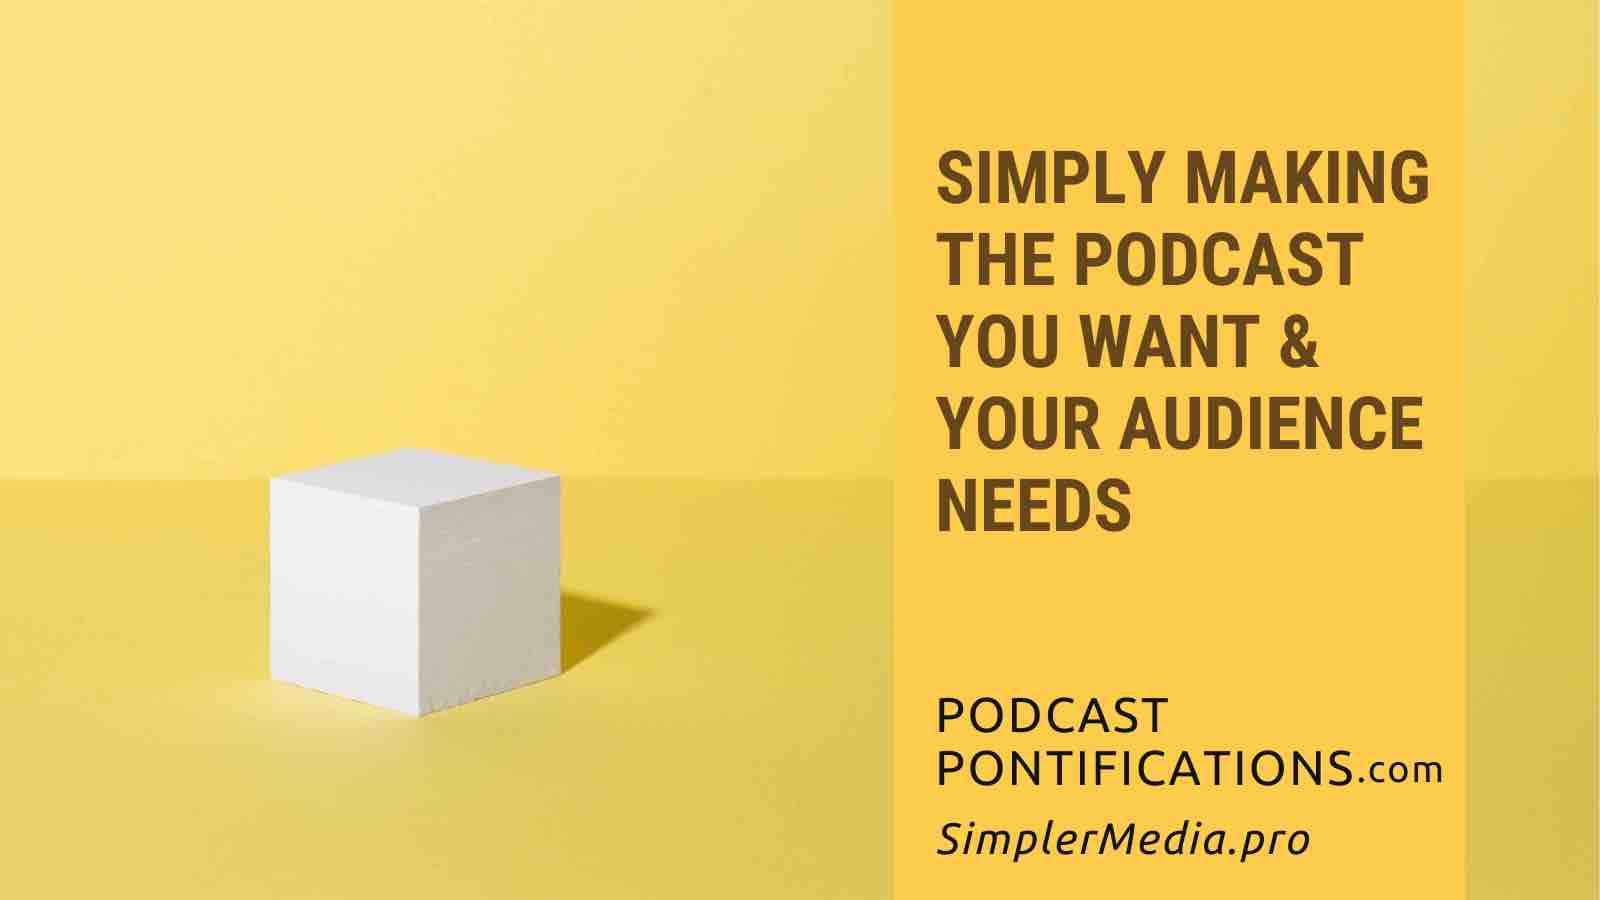 Simply Making The Podcast You Want & Your Audience Needs